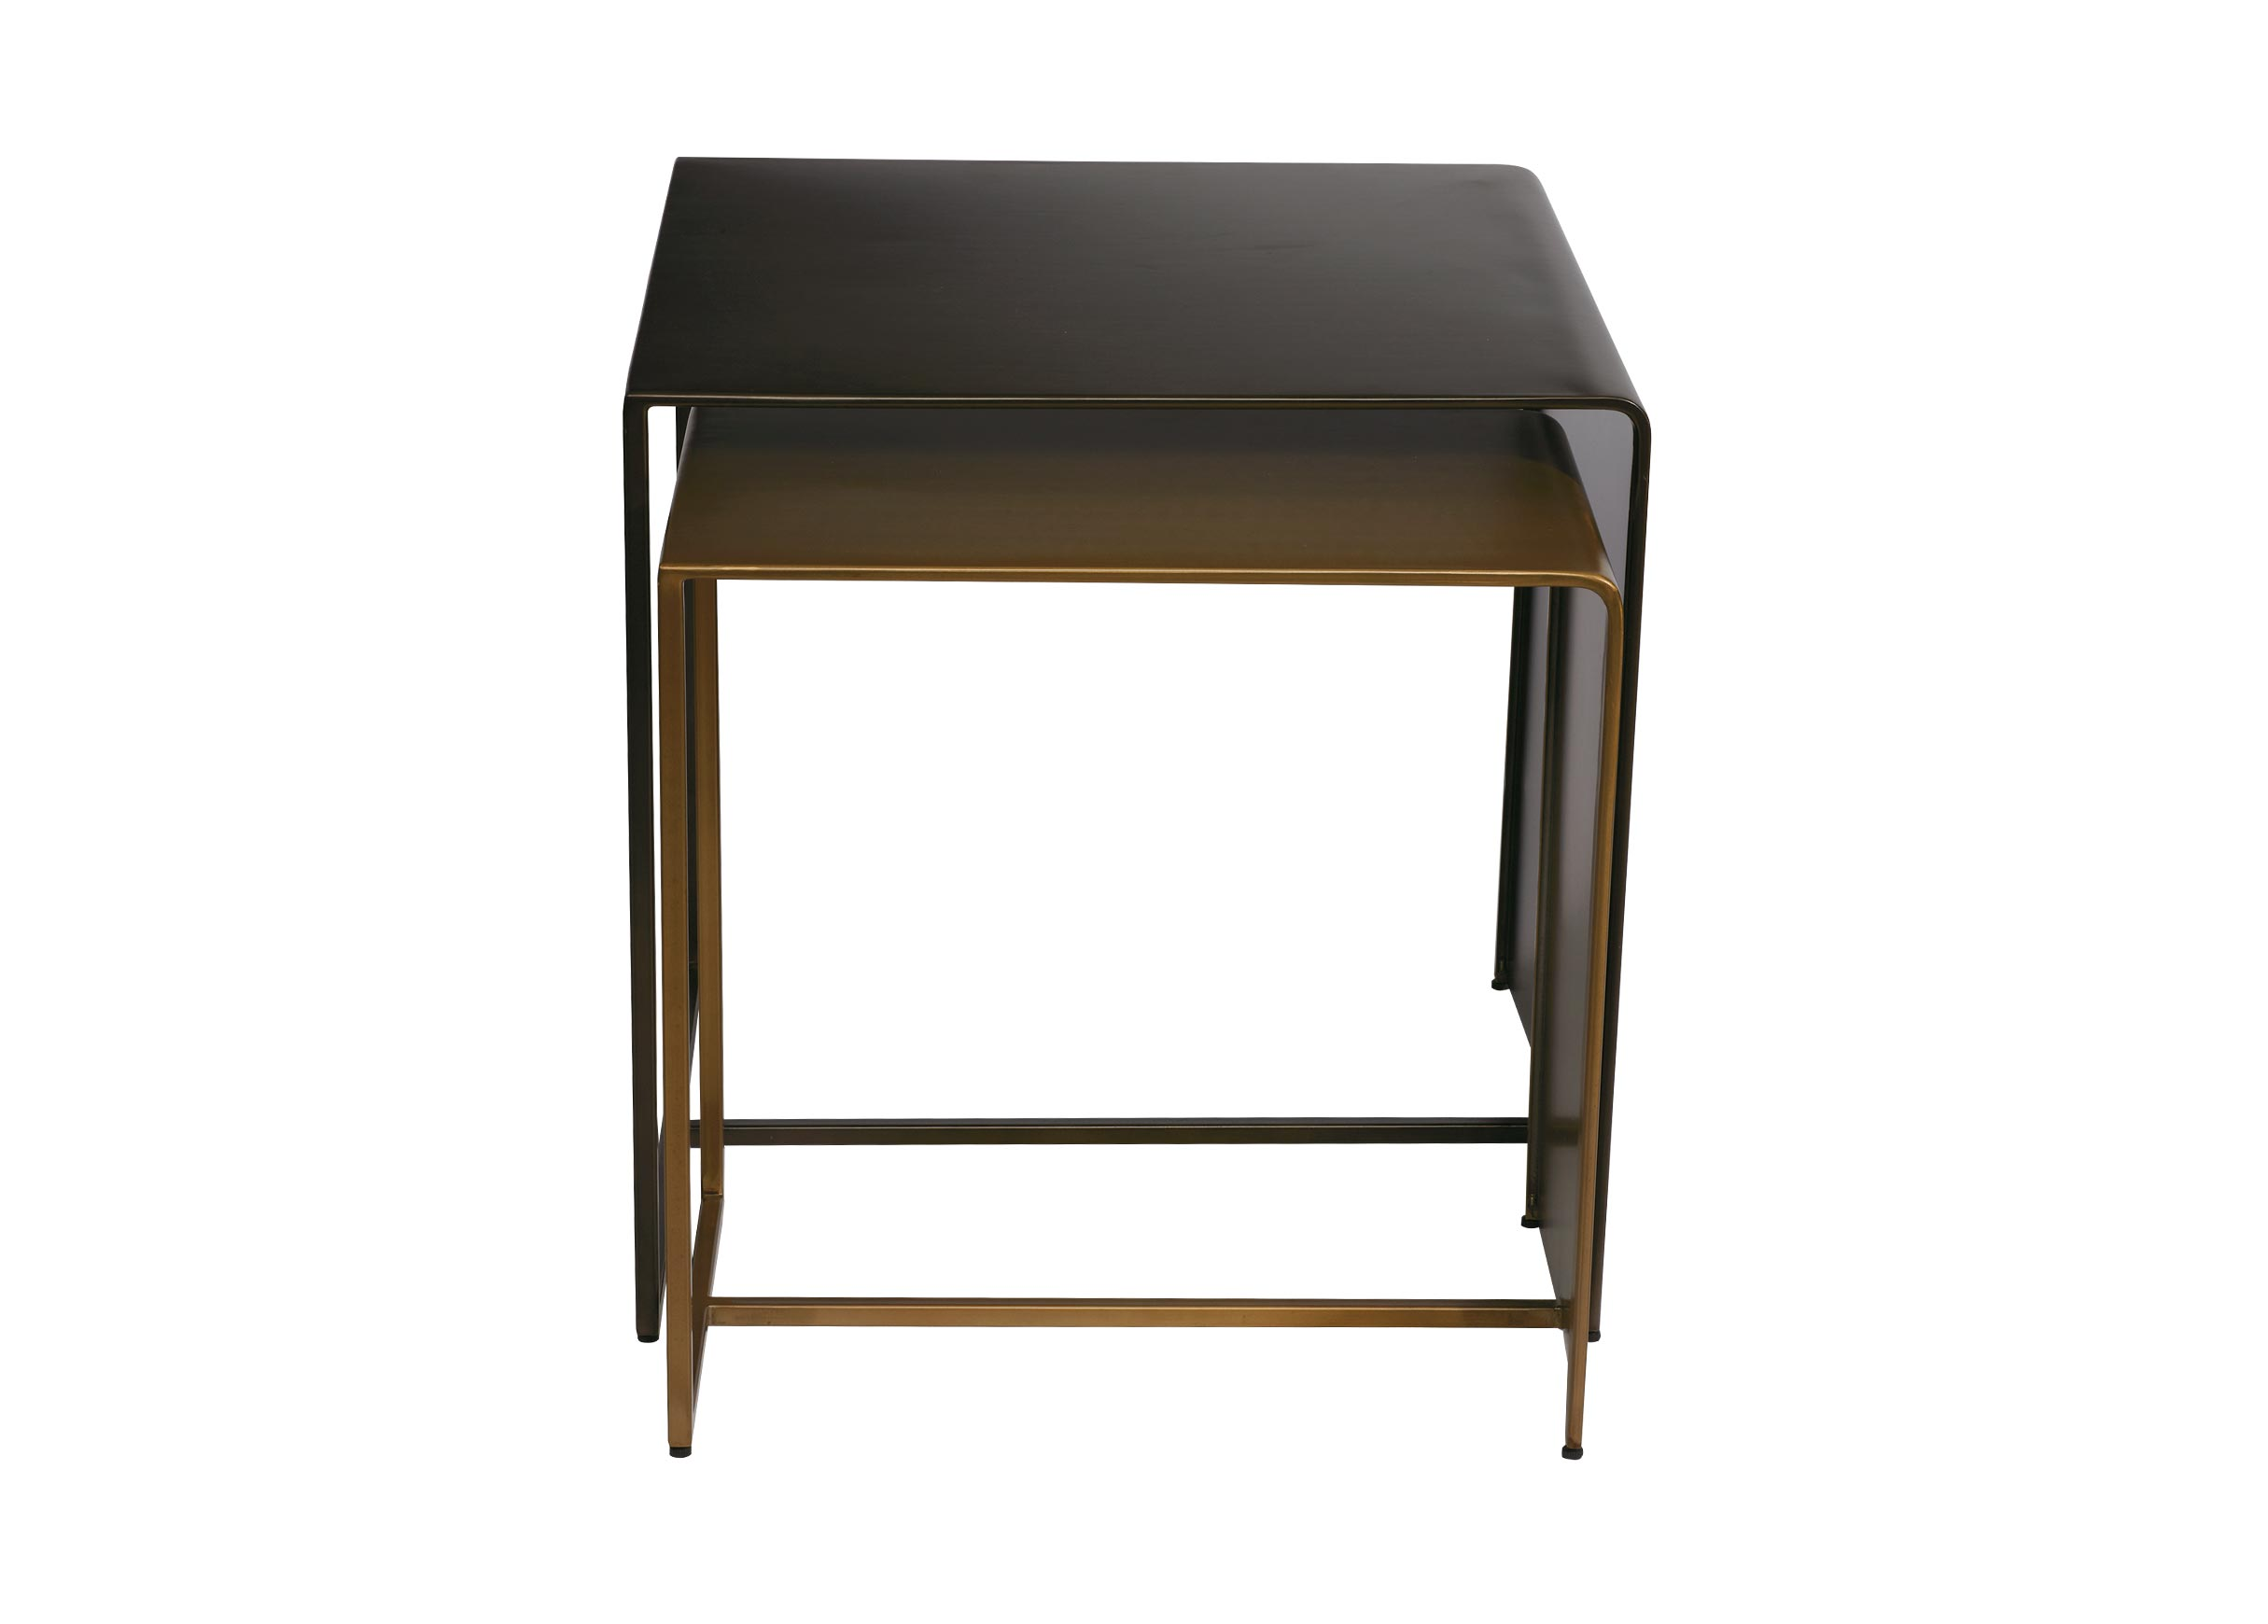 navina square metal nesting tables ethan allen accent end golf bag rain cover unique dining chairs farmhouse style nightstands unfinished furniture toledo hanging bedside table